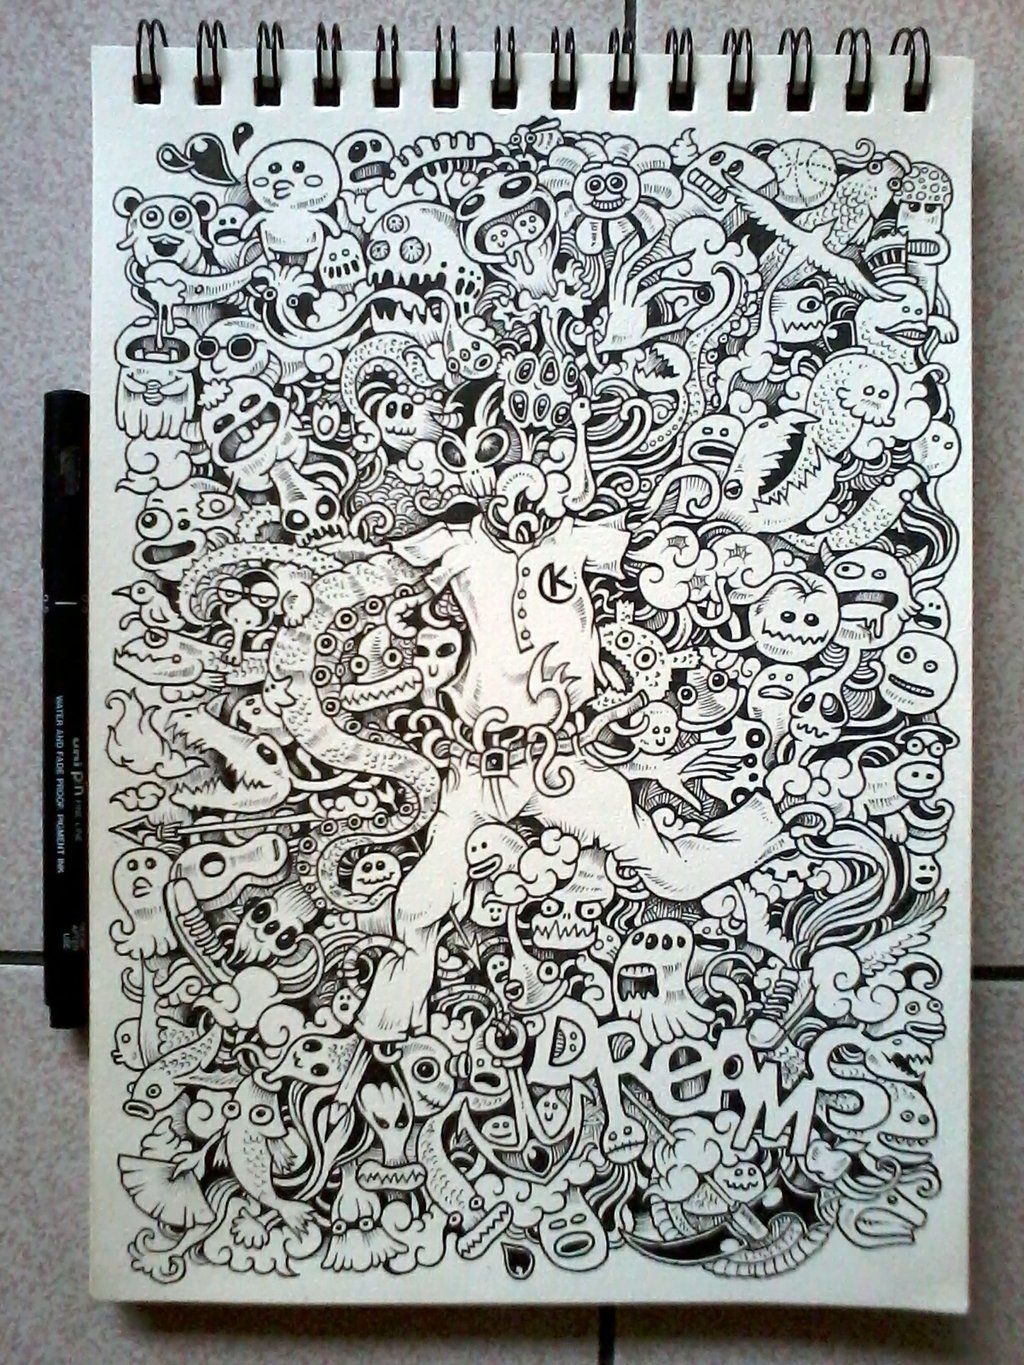 Anti stress colouring doodle and dream - Doodle Art Dreams Just An Outburst Of Doodles To Get Away With All The Stress Im Feeling Better Now